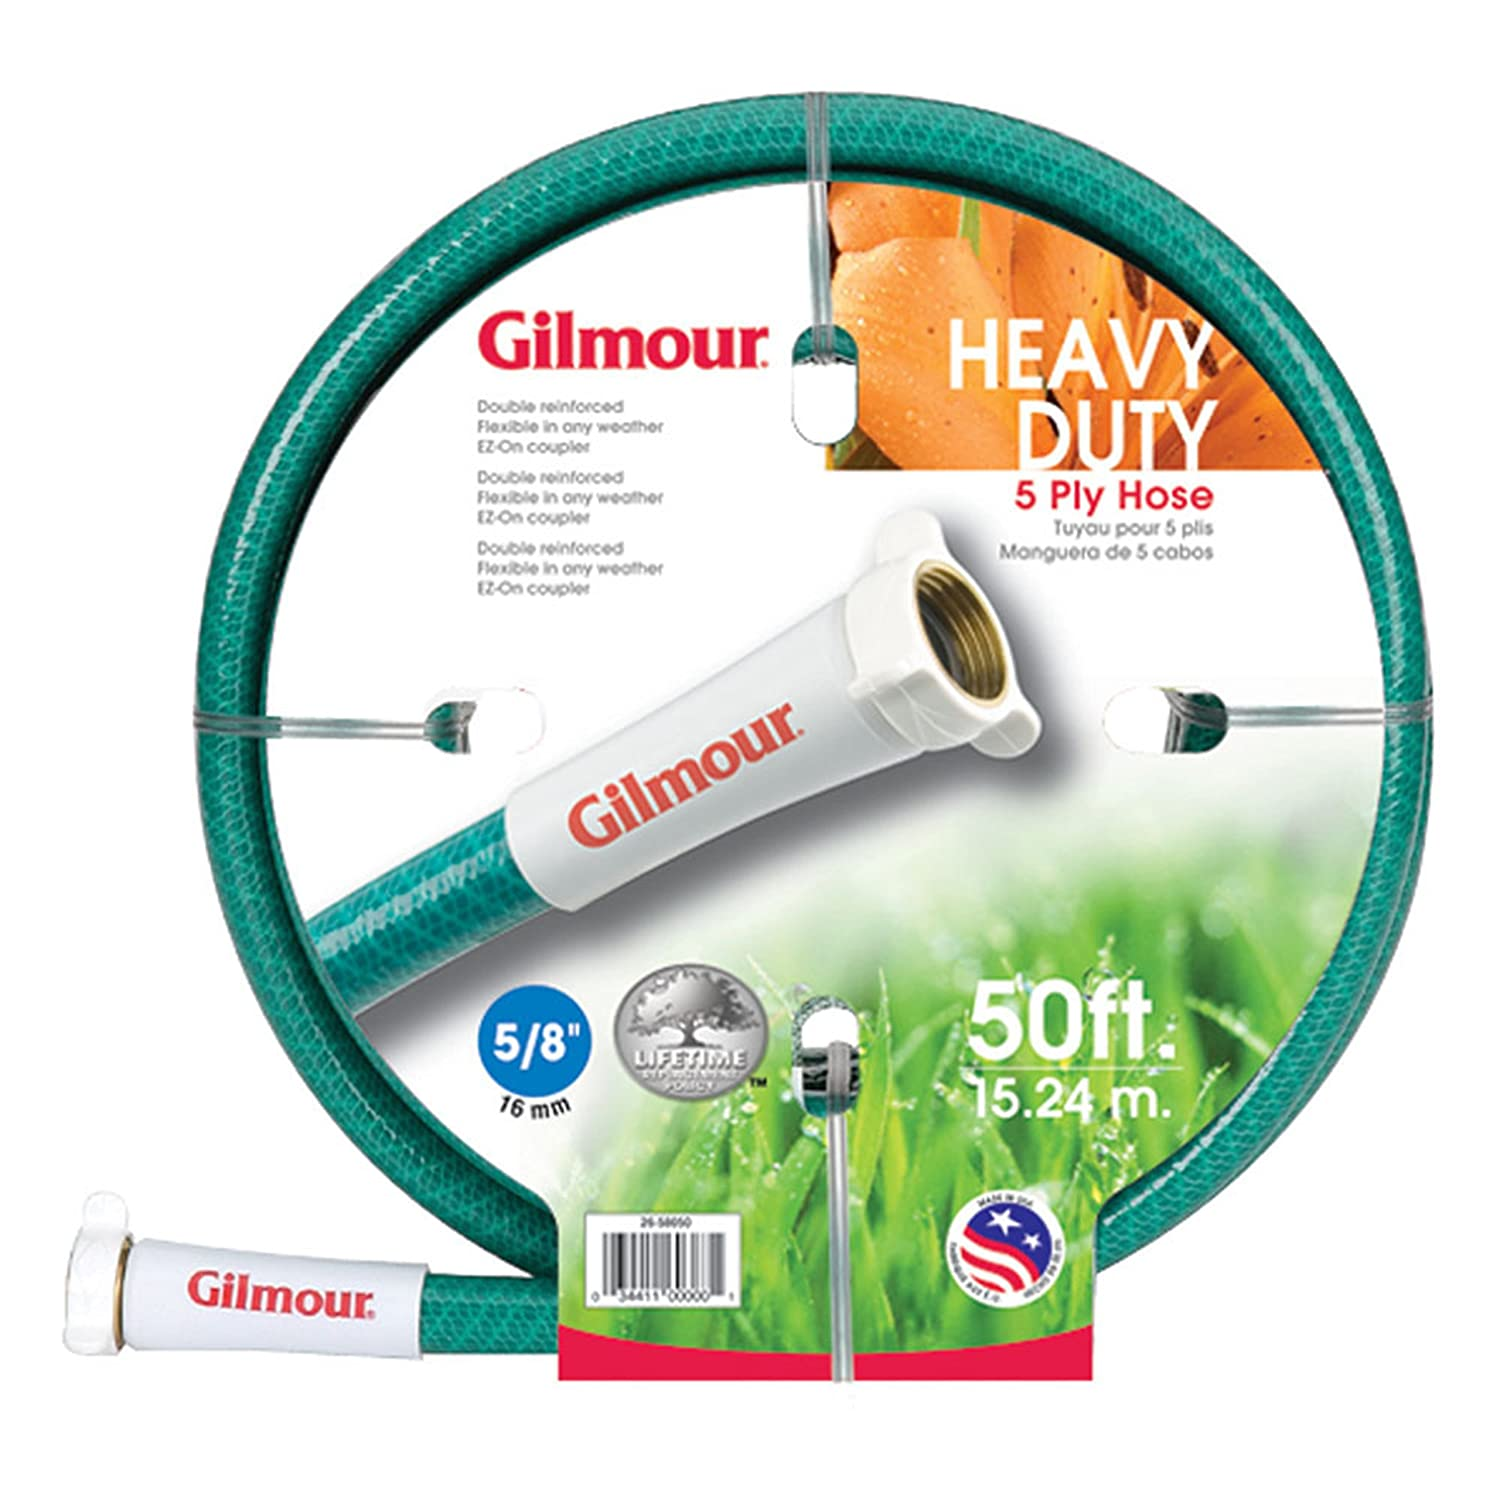 Gilmour 26 Series 5 Ply All Seasons Double Reinforced Vinyl Hose 5/8 Inch x 75 Feet 26-58075 Green